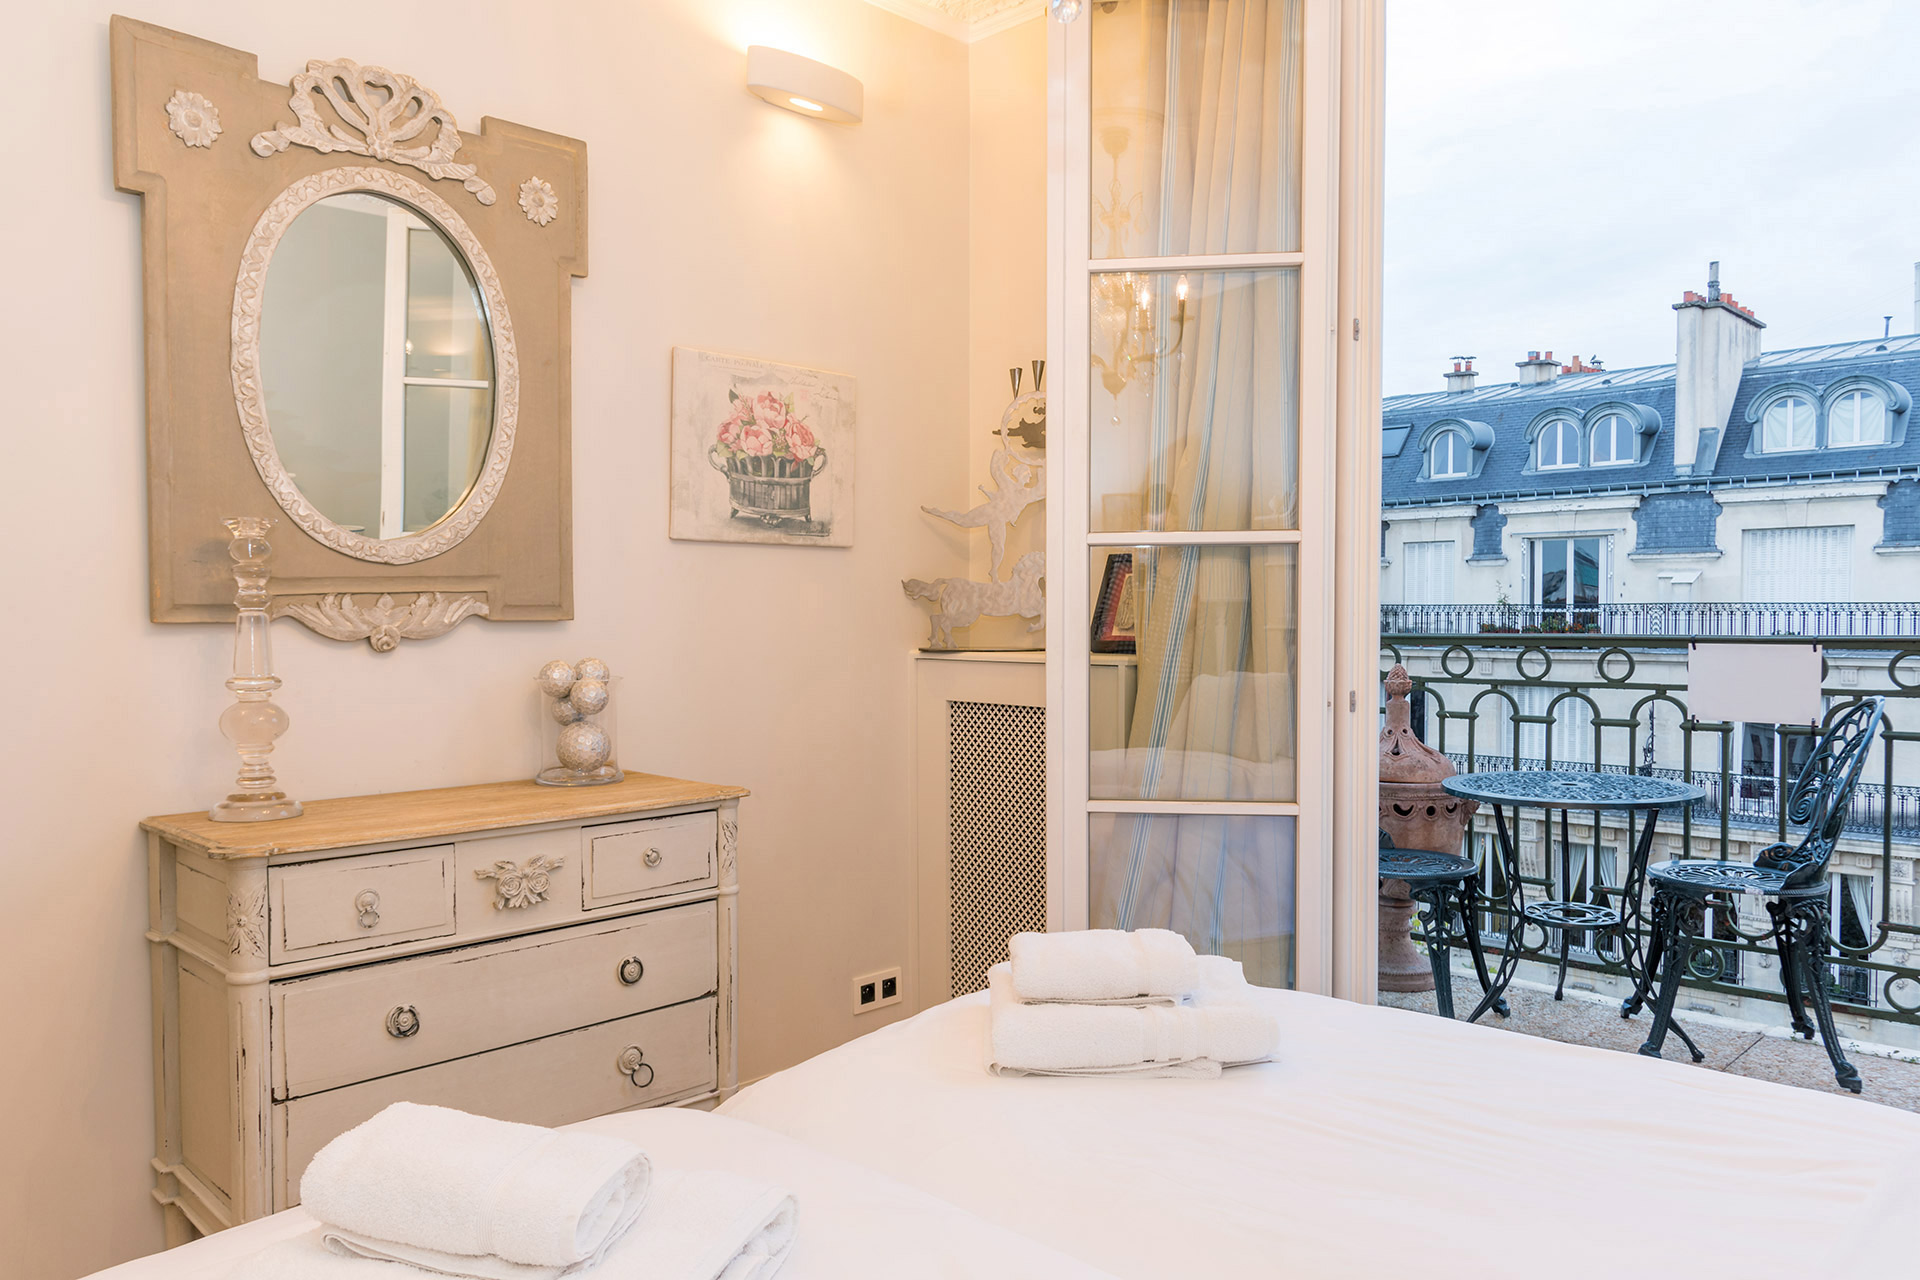 Charming decor in the second bedroom of the Margaux vacation rental offered by Paris Perfect